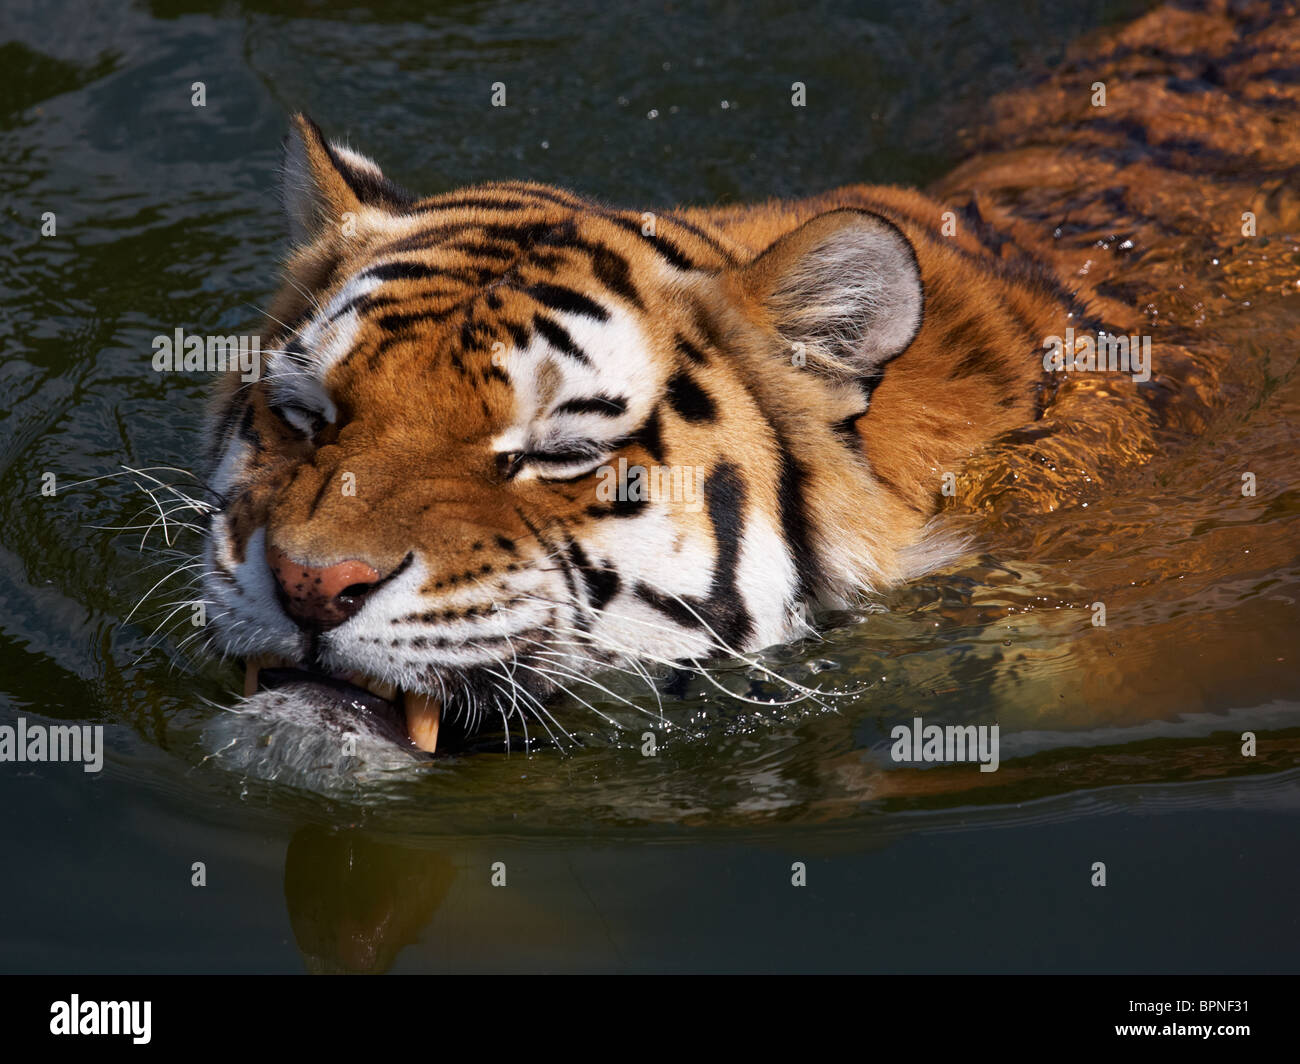 Close-up portrait of a Siberian Tiger swimming in the water - Stock Image